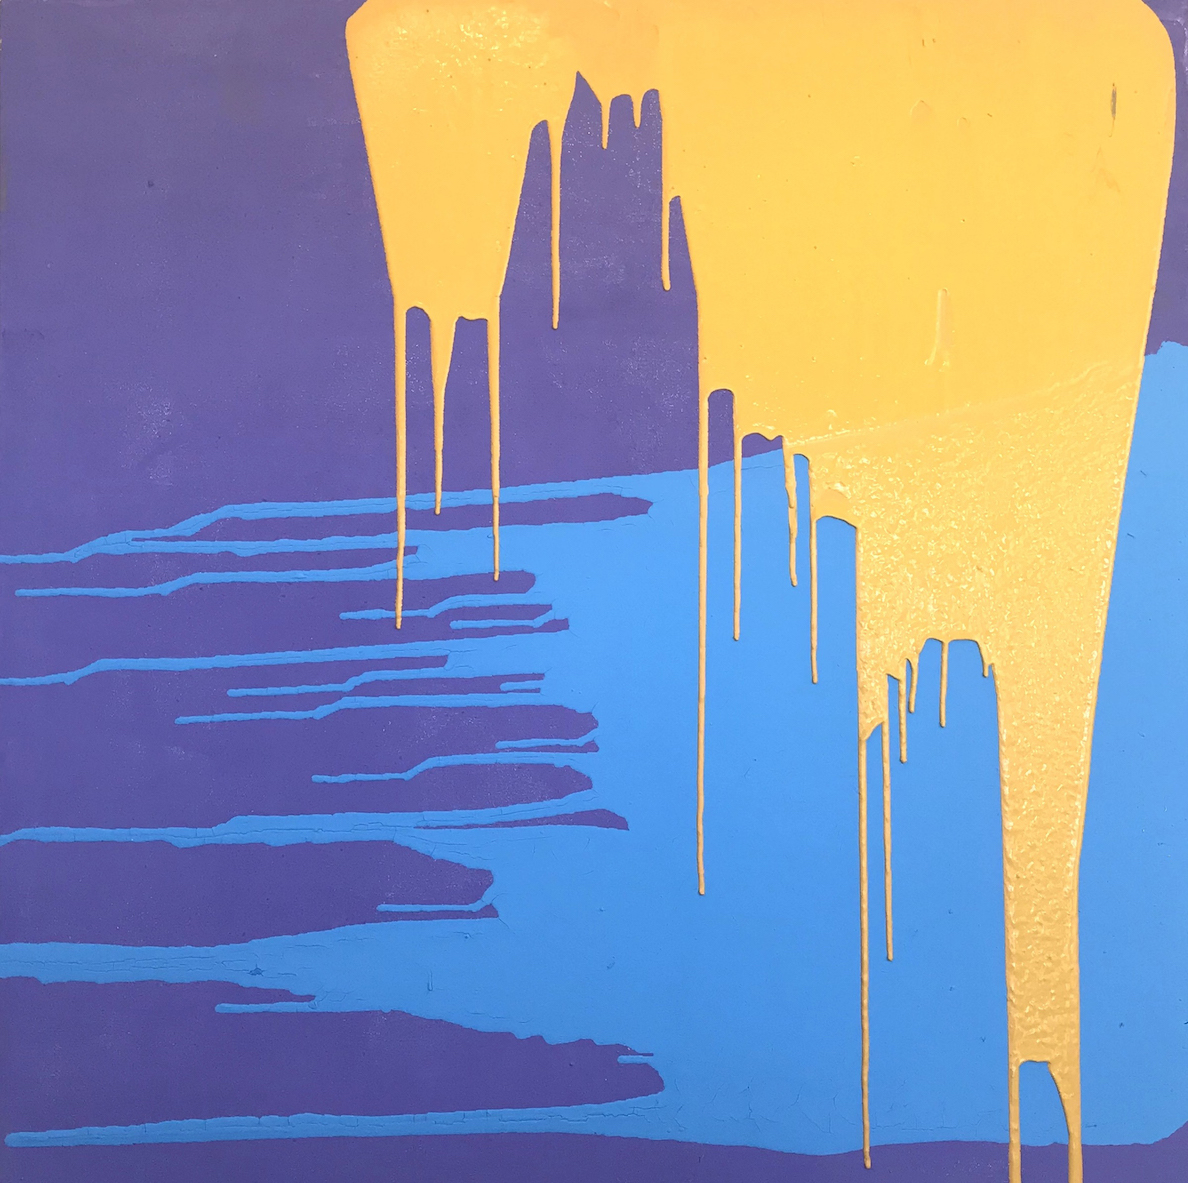 Ashton S. Phillips: Blossom (Gold on Blue on Lavender)